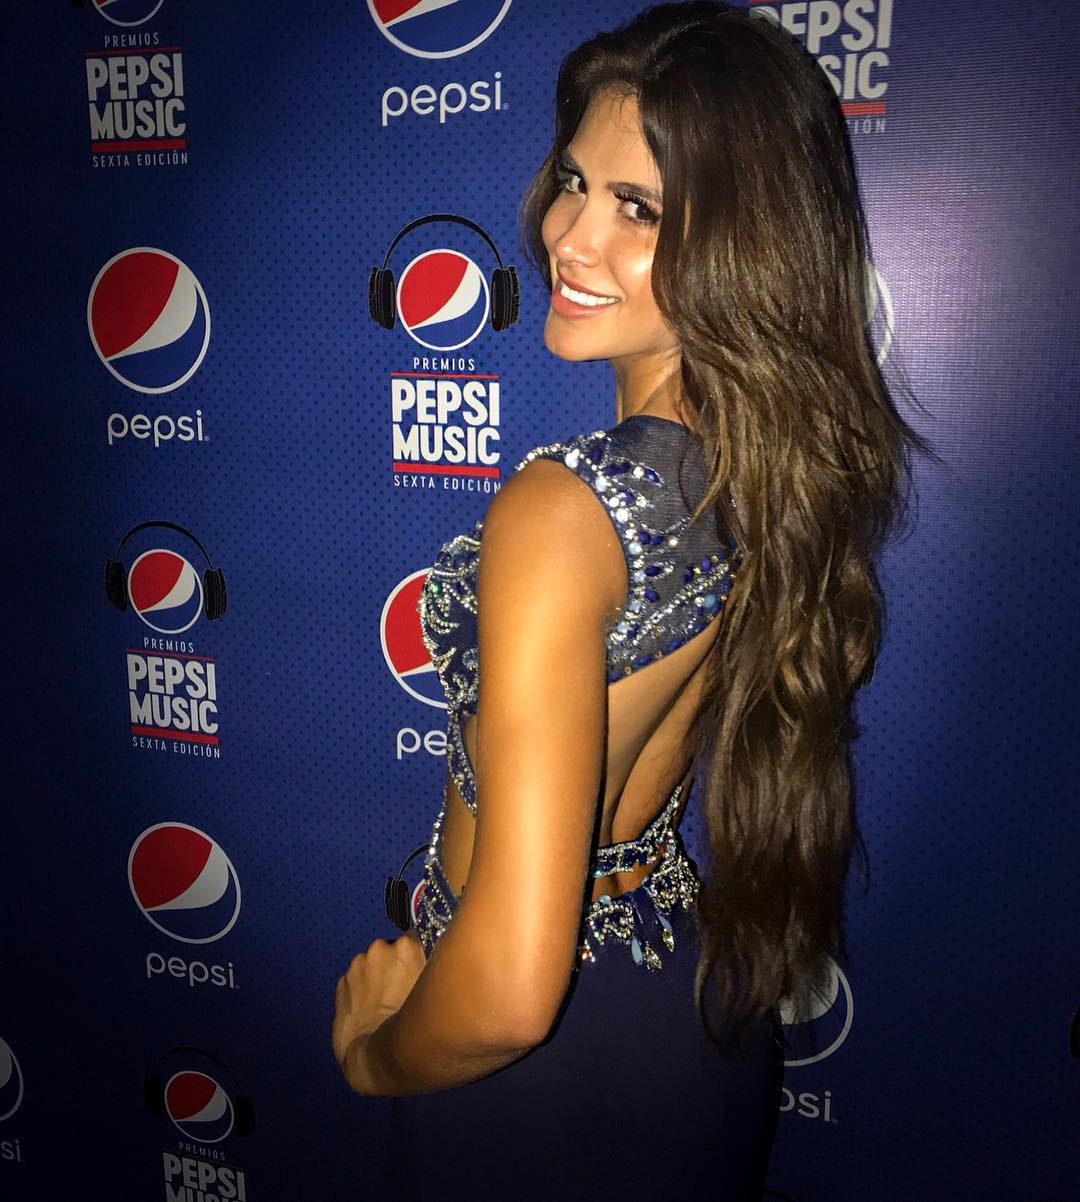 michell castellanos, miss earth venezuela 2019. - Página 5 41696410